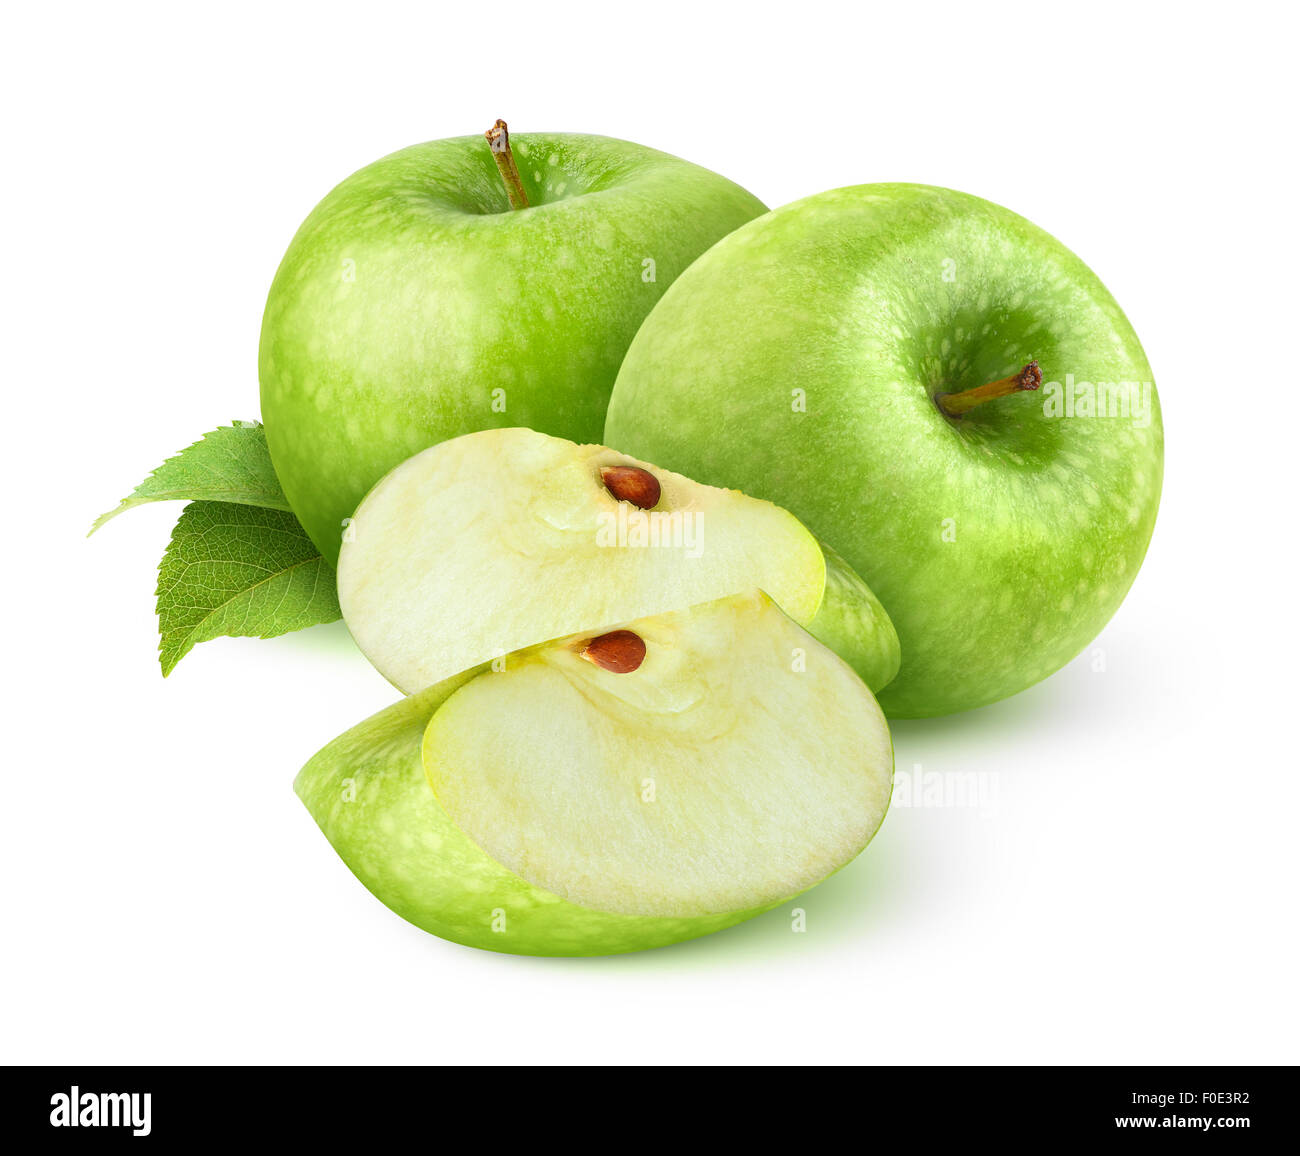 Green apples isolated on white - Stock Image